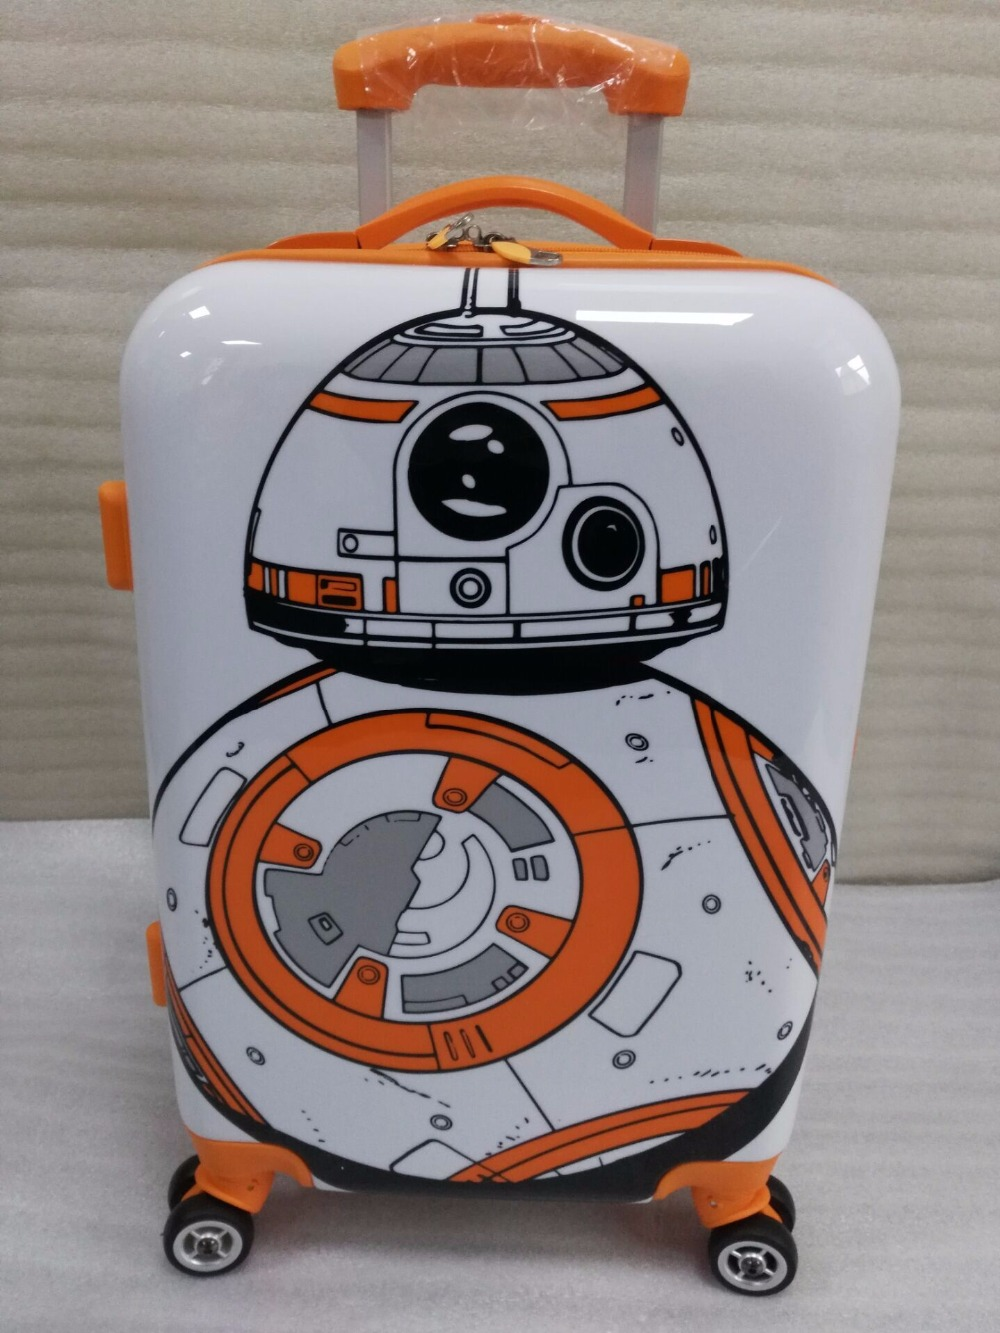 STAR WAR BB8 Robot  Rolling Luggage Spinner Travel Suitcase girls boys gift handside luggageSTAR WAR BB8 Robot  Rolling Luggage Spinner Travel Suitcase girls boys gift handside luggage